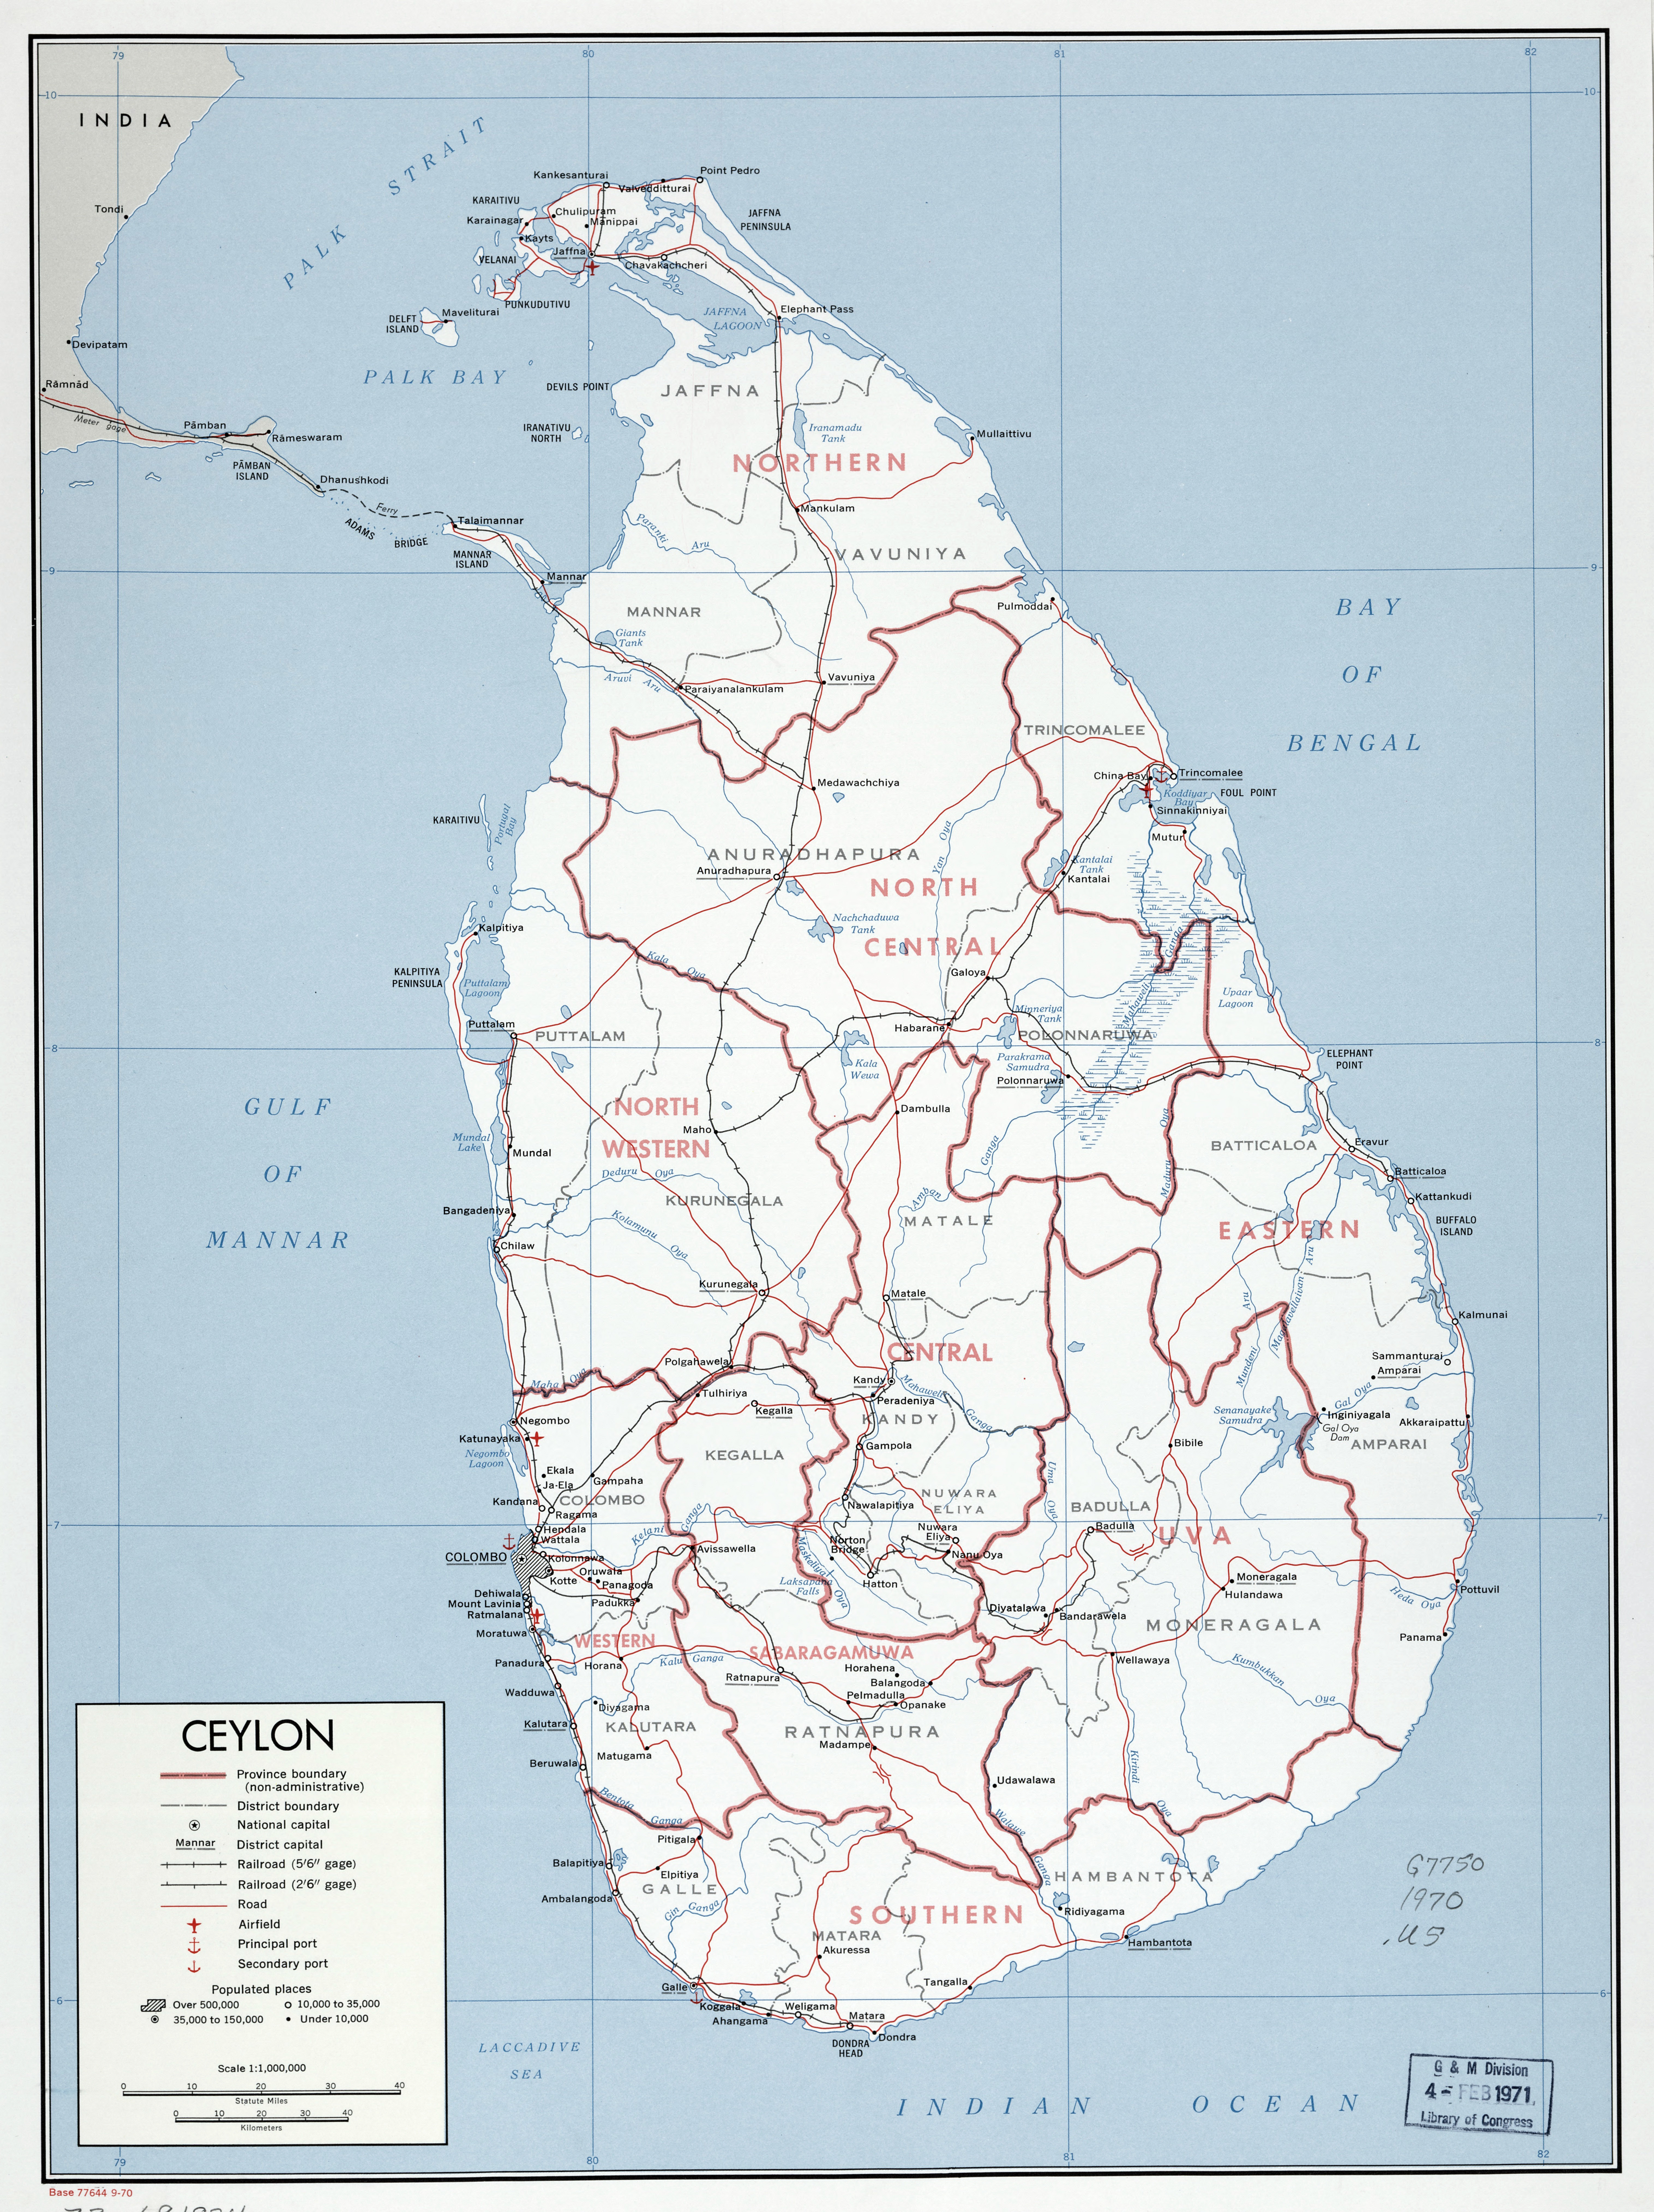 Large scale detailed political and administrative map of Sri Lanka